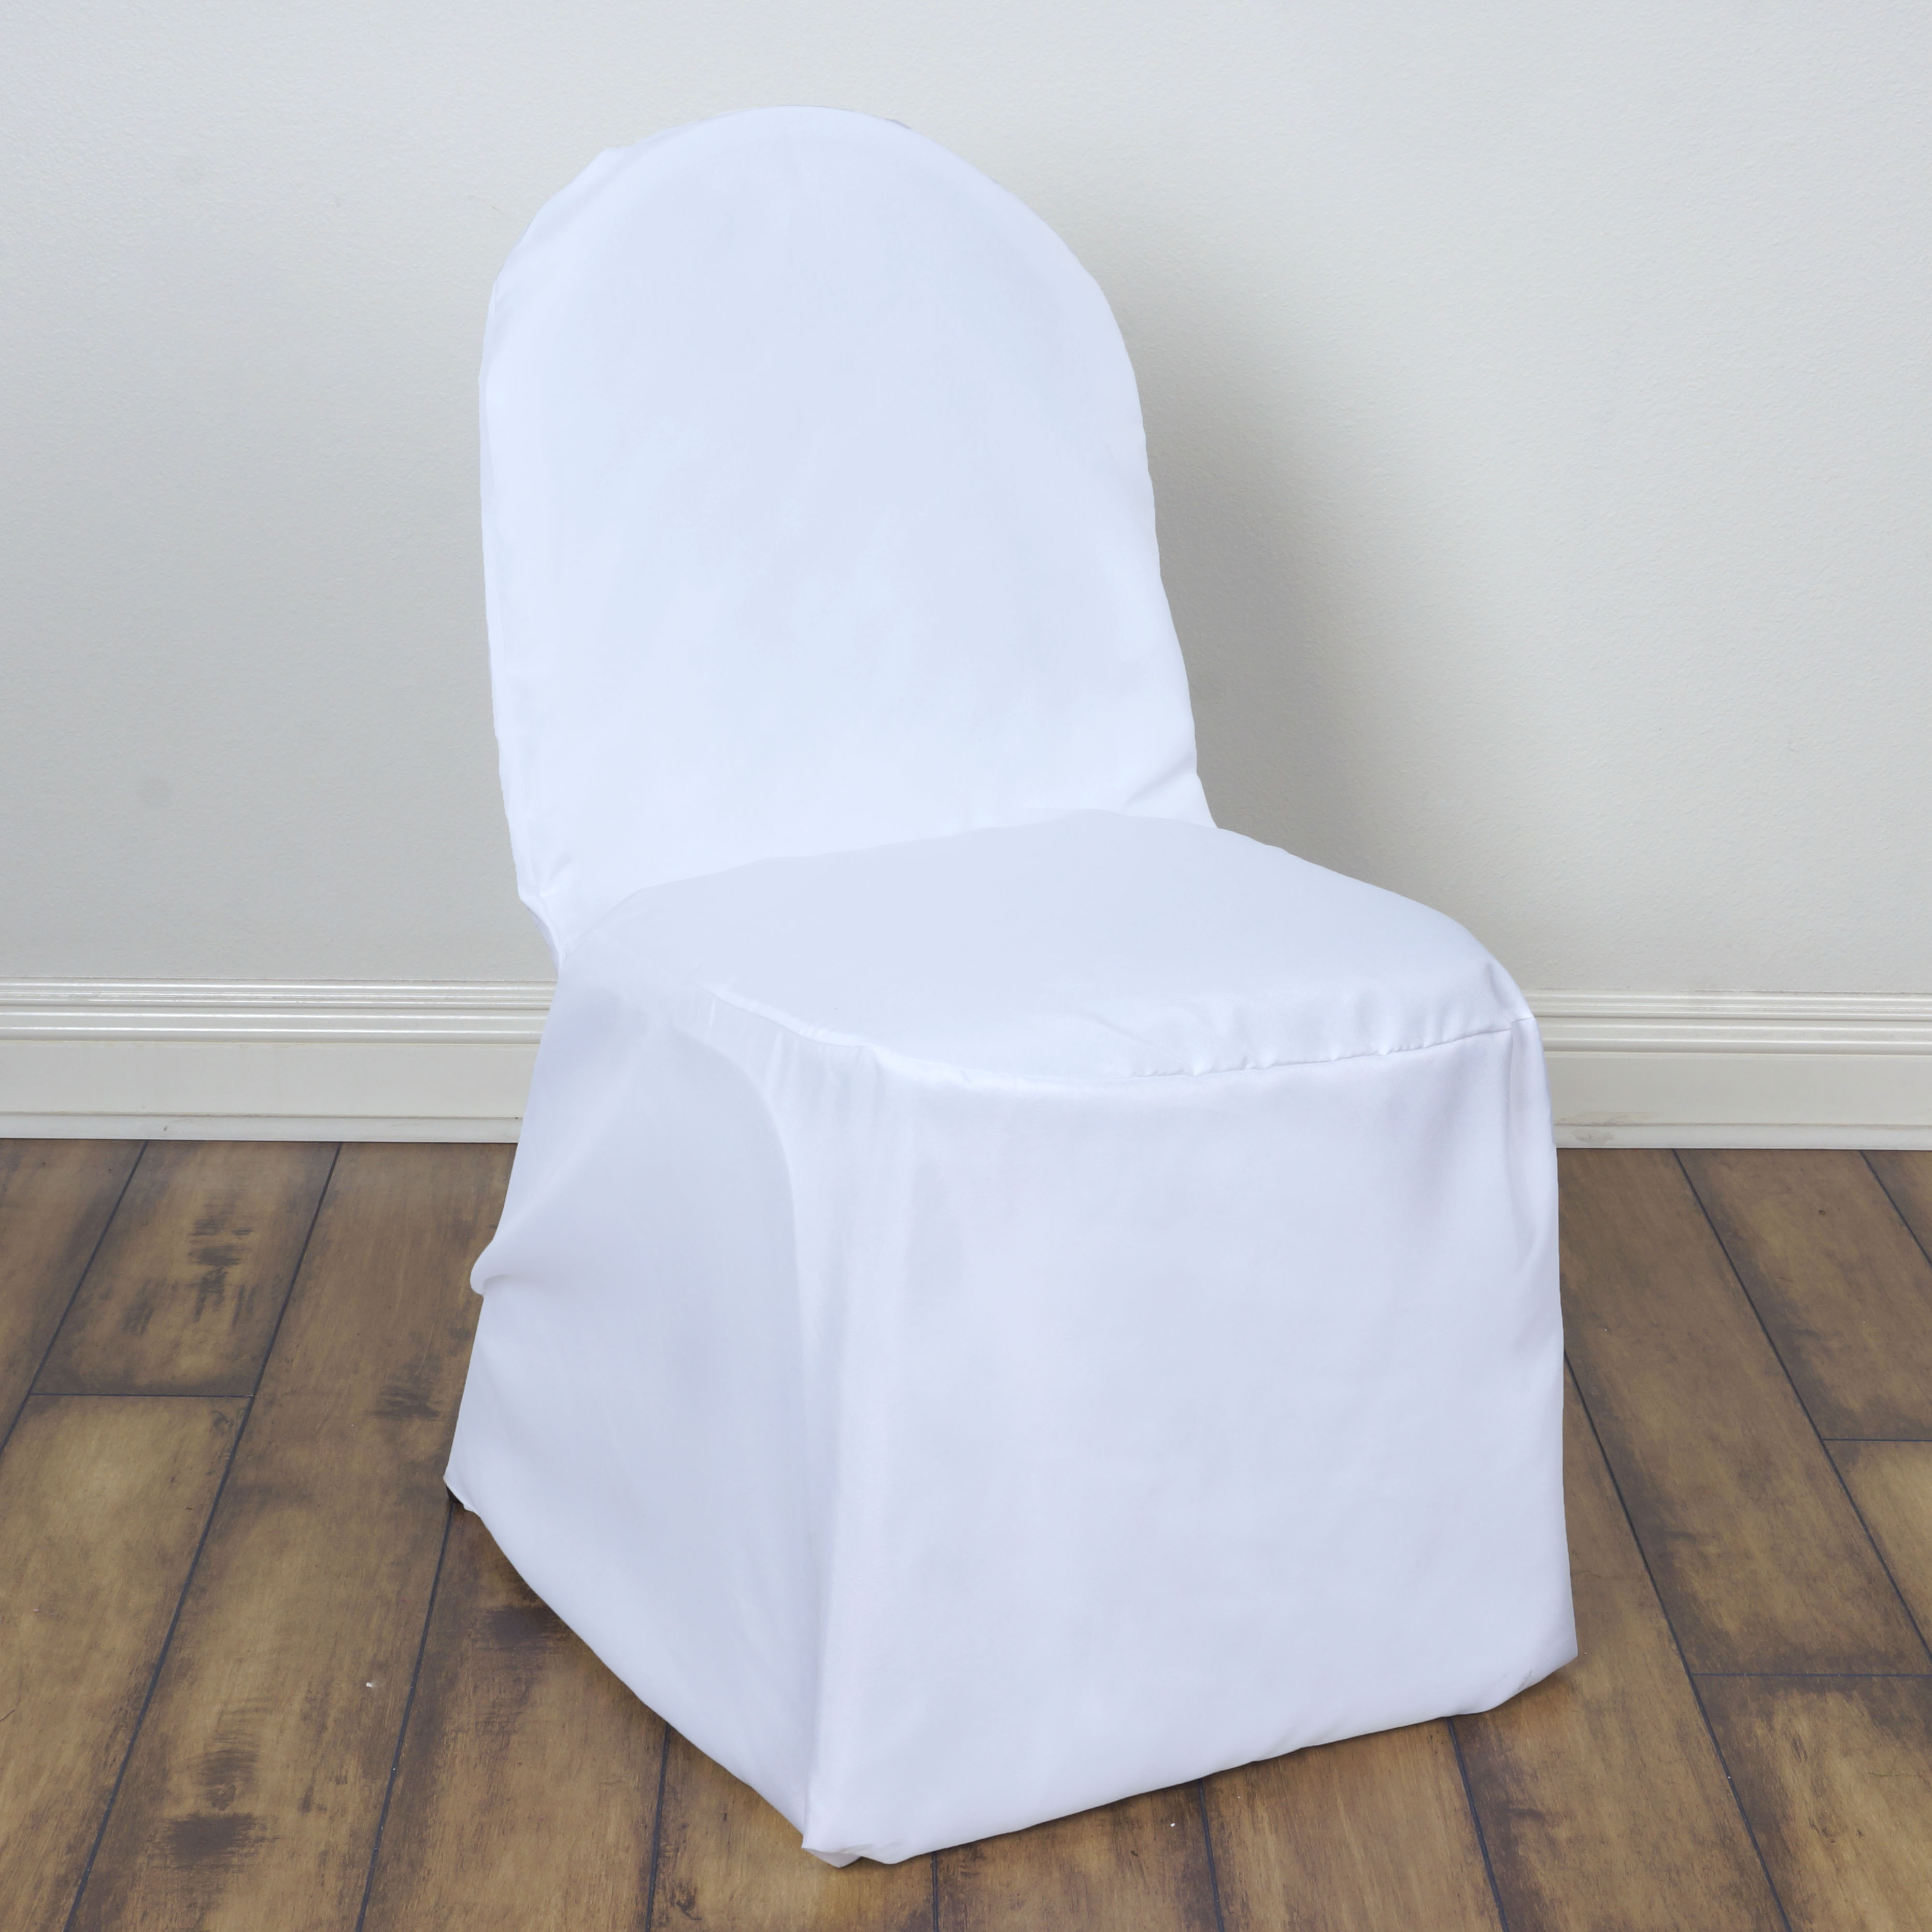 150 pcs POLYESTER BANQUET CHAIR COVERS Wedding Reception Party